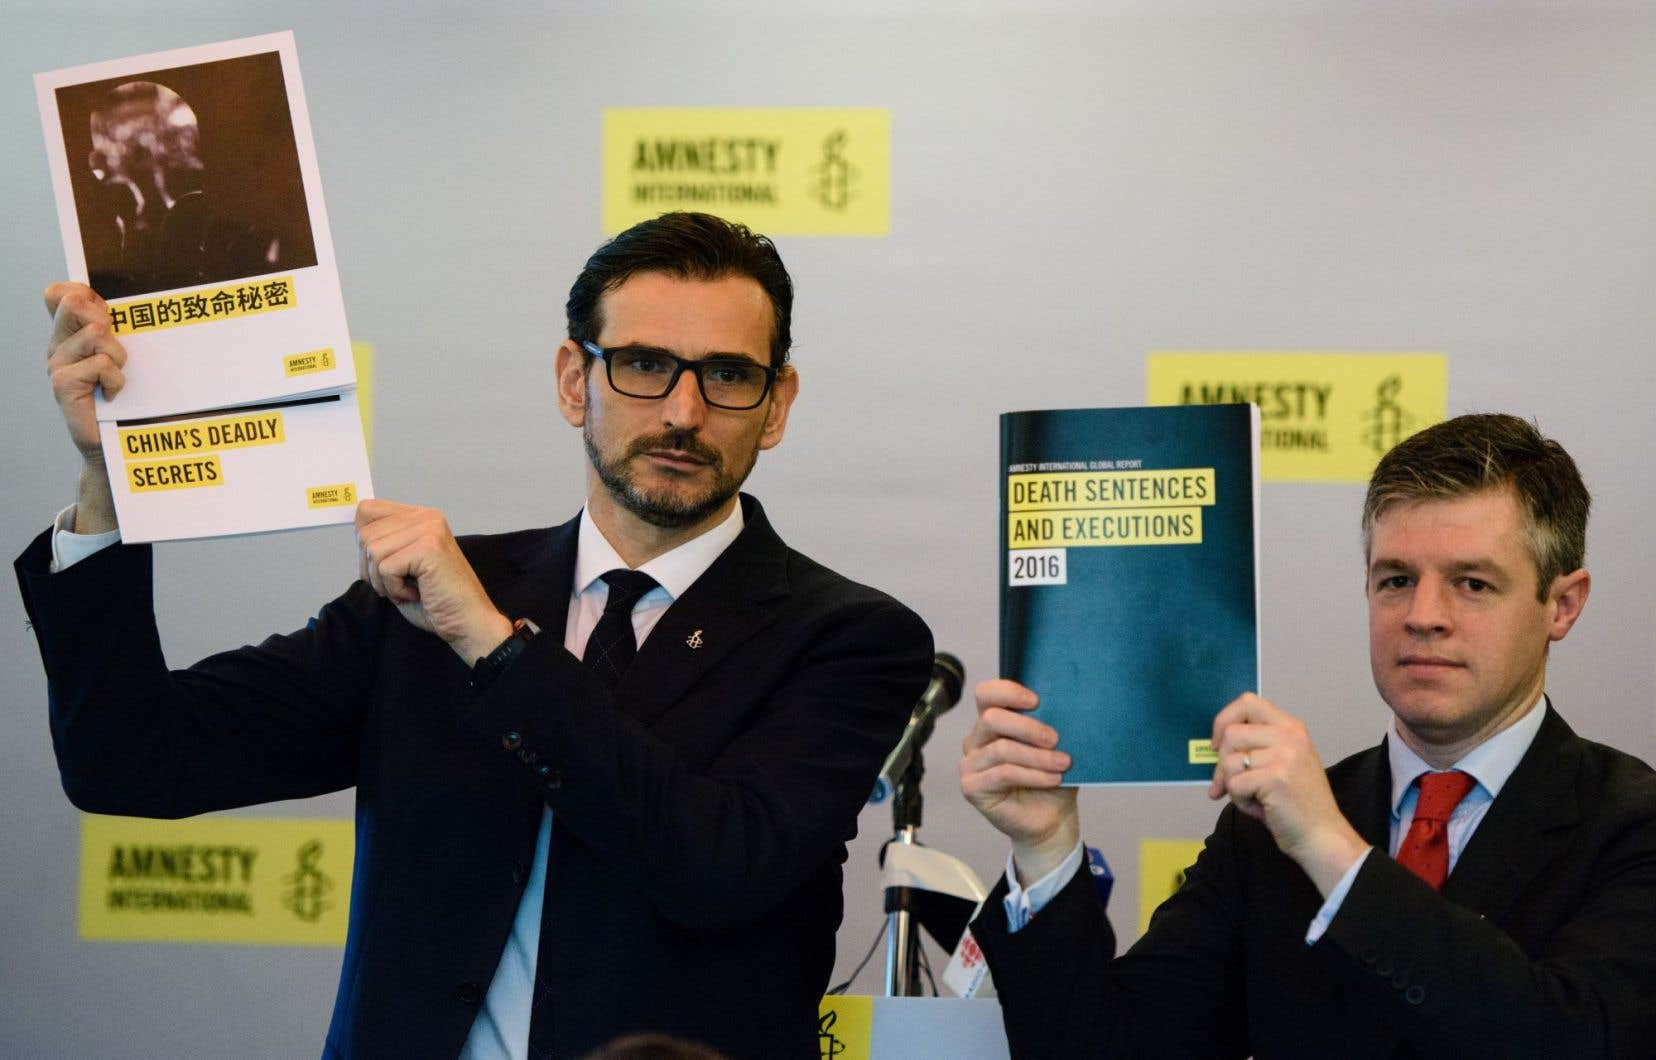 Le directeur d'Amnesty International pour l'Asie de l'Est, Nicholas Bequelin, et le directeur adjoint du Global Issue Programme, James Lynch, à Hong Kong, lundi